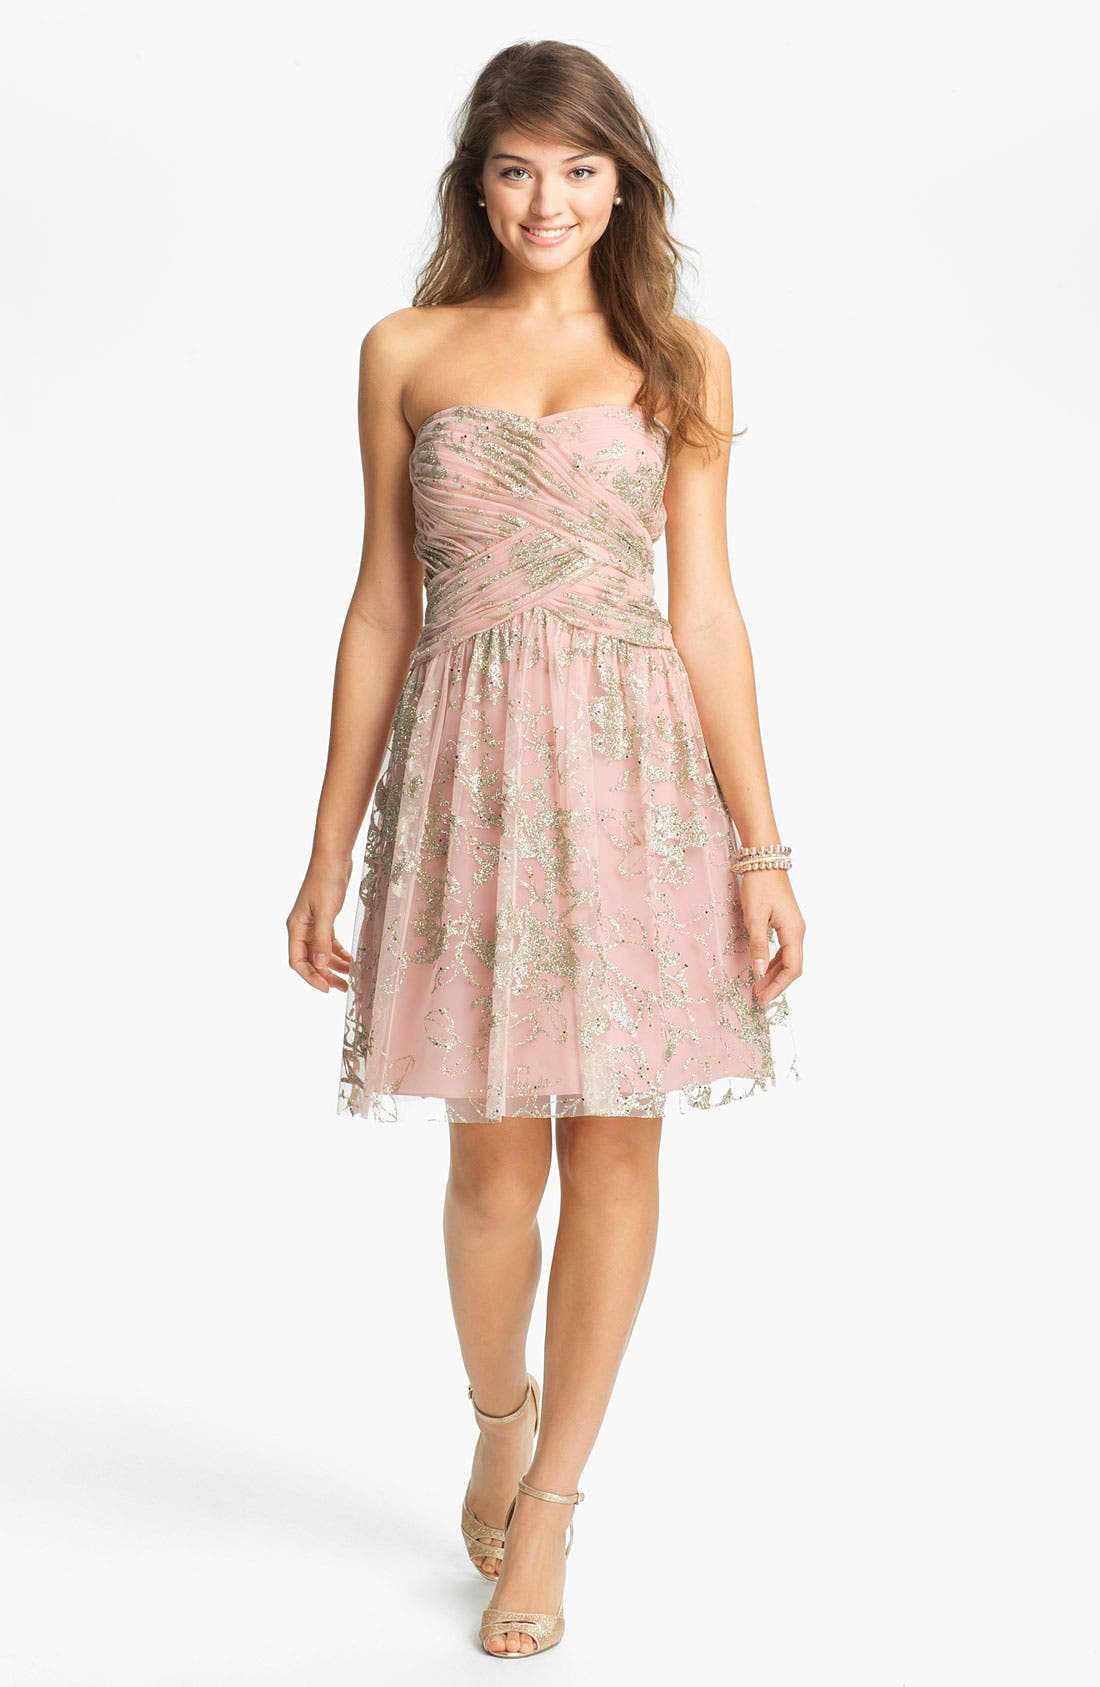 Main Image - Hailey by Adrianna Papell Glitter Tulle Fit & Flare Dress (Online Only)